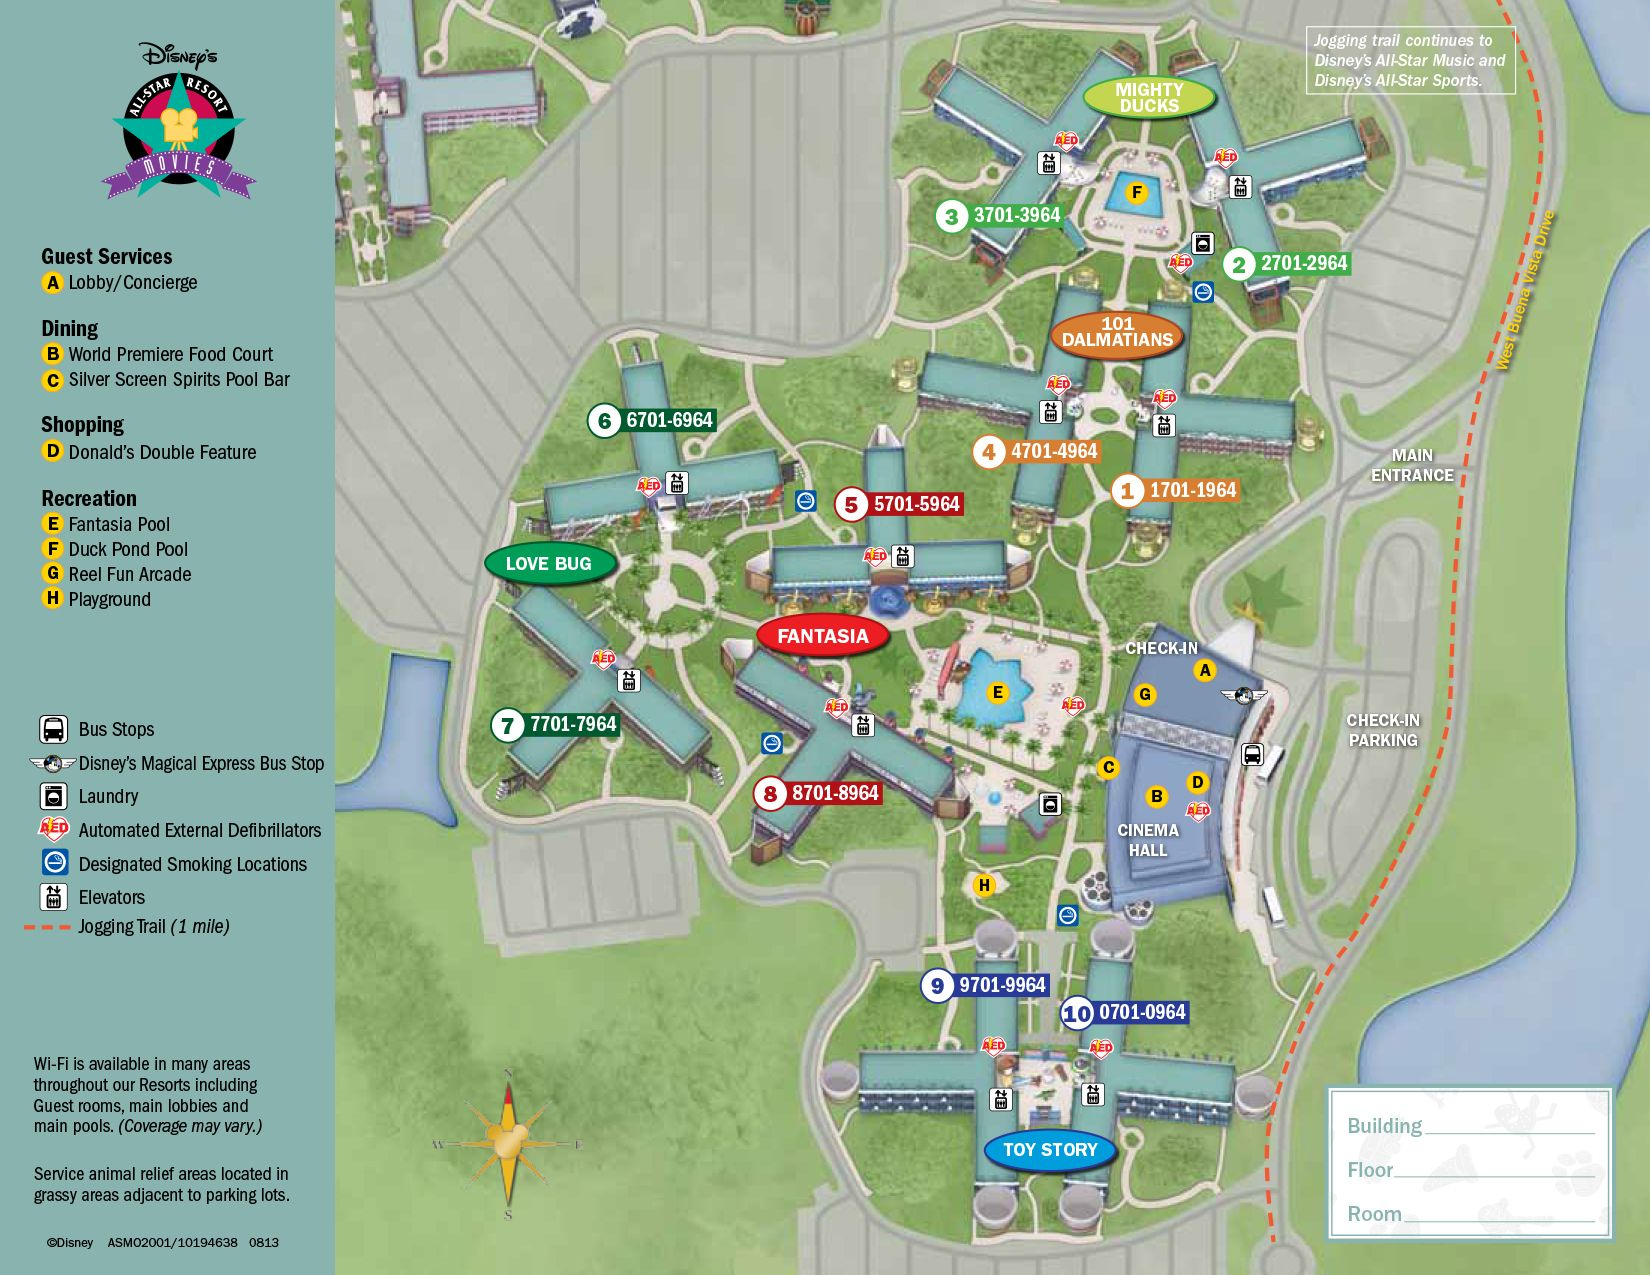 Star Movies Resort Map Disney World Maps